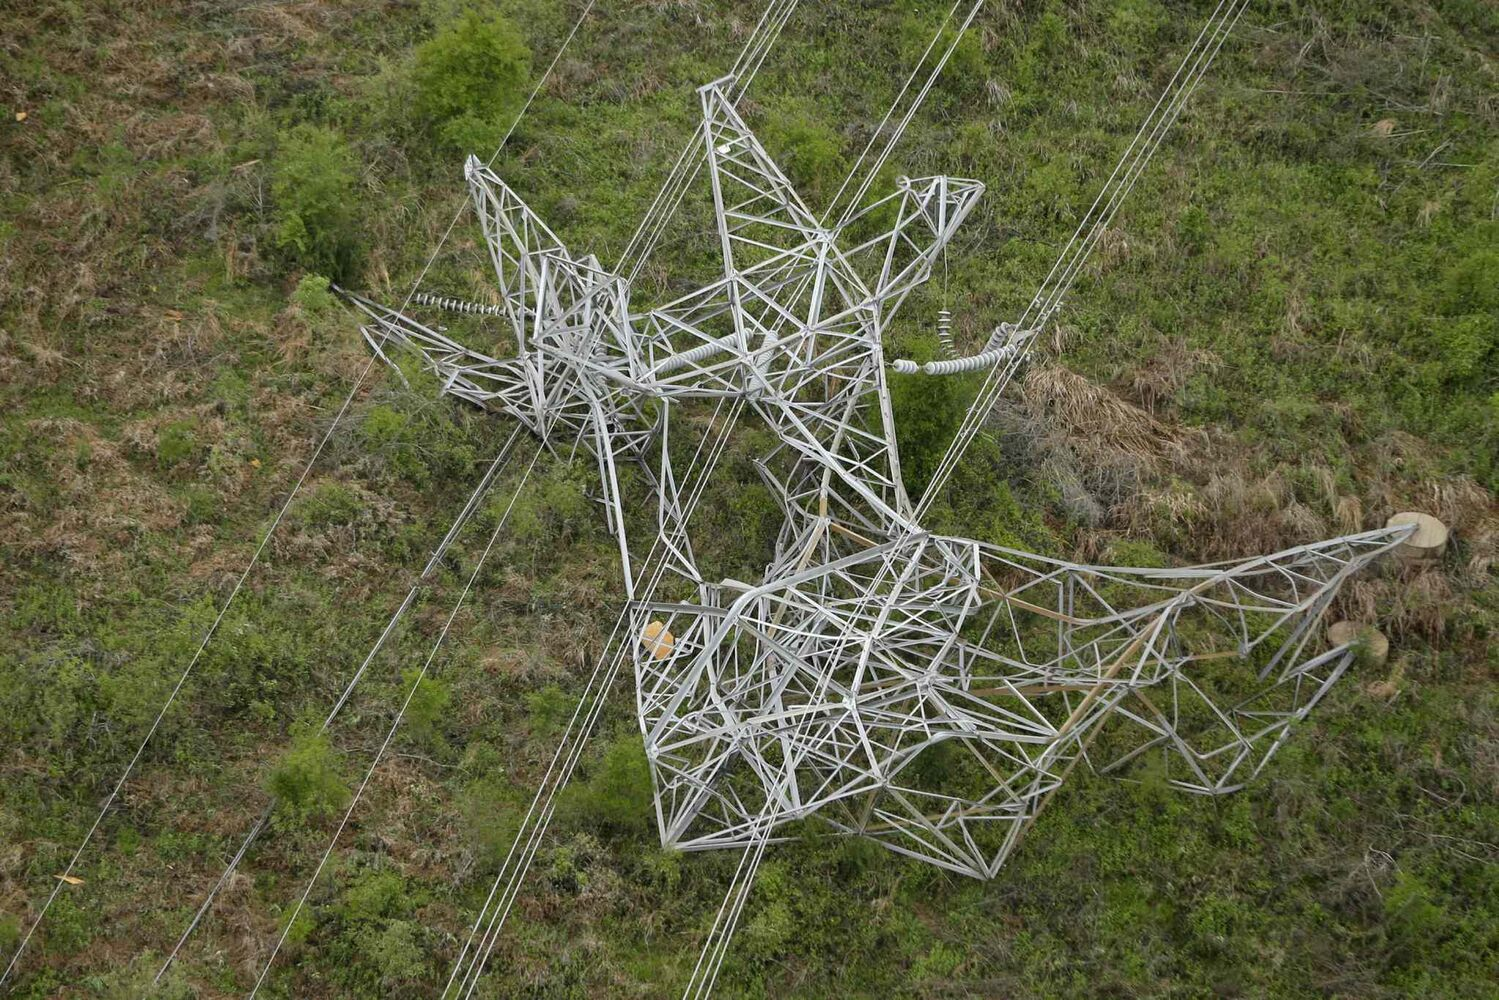 A twisted power distribution line tower is crumpled on the ground near Mayflower, Ark., Monday, April 28, 2014 after a tornado struck the town late Sunday.  (Danny Johnston / The Associated Press)